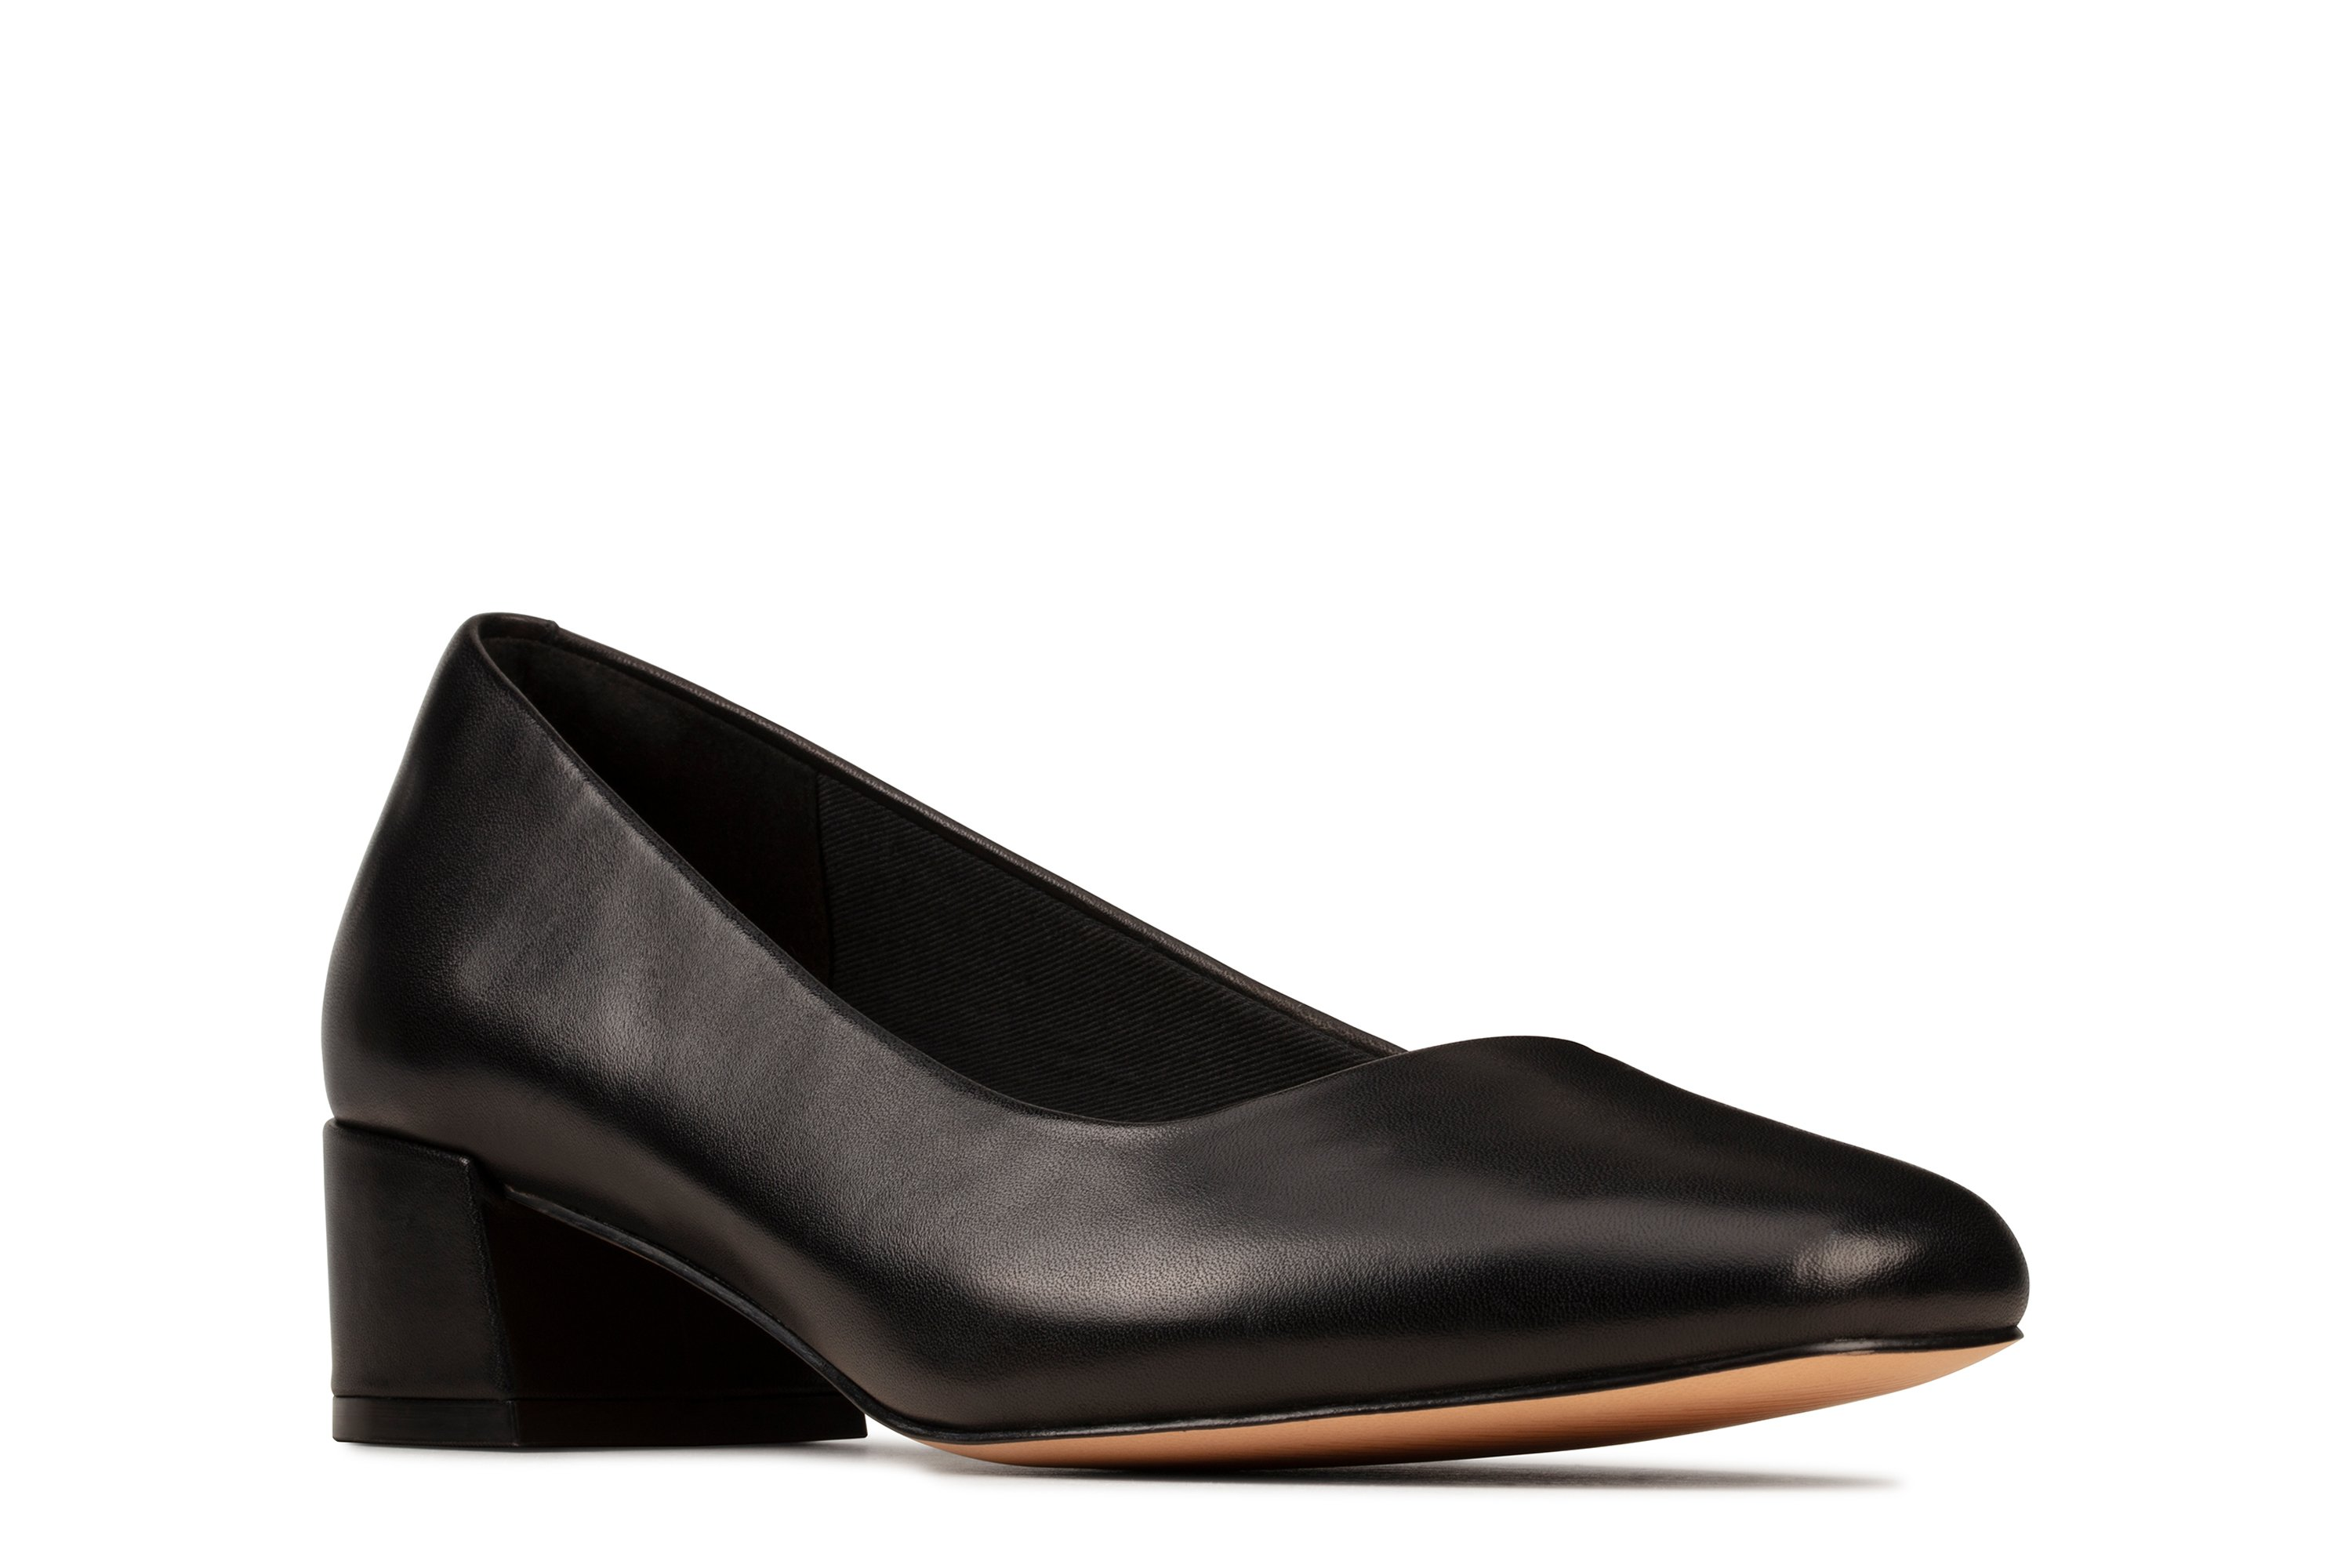 Clarks Sheer35 Court Black Leather 26148873